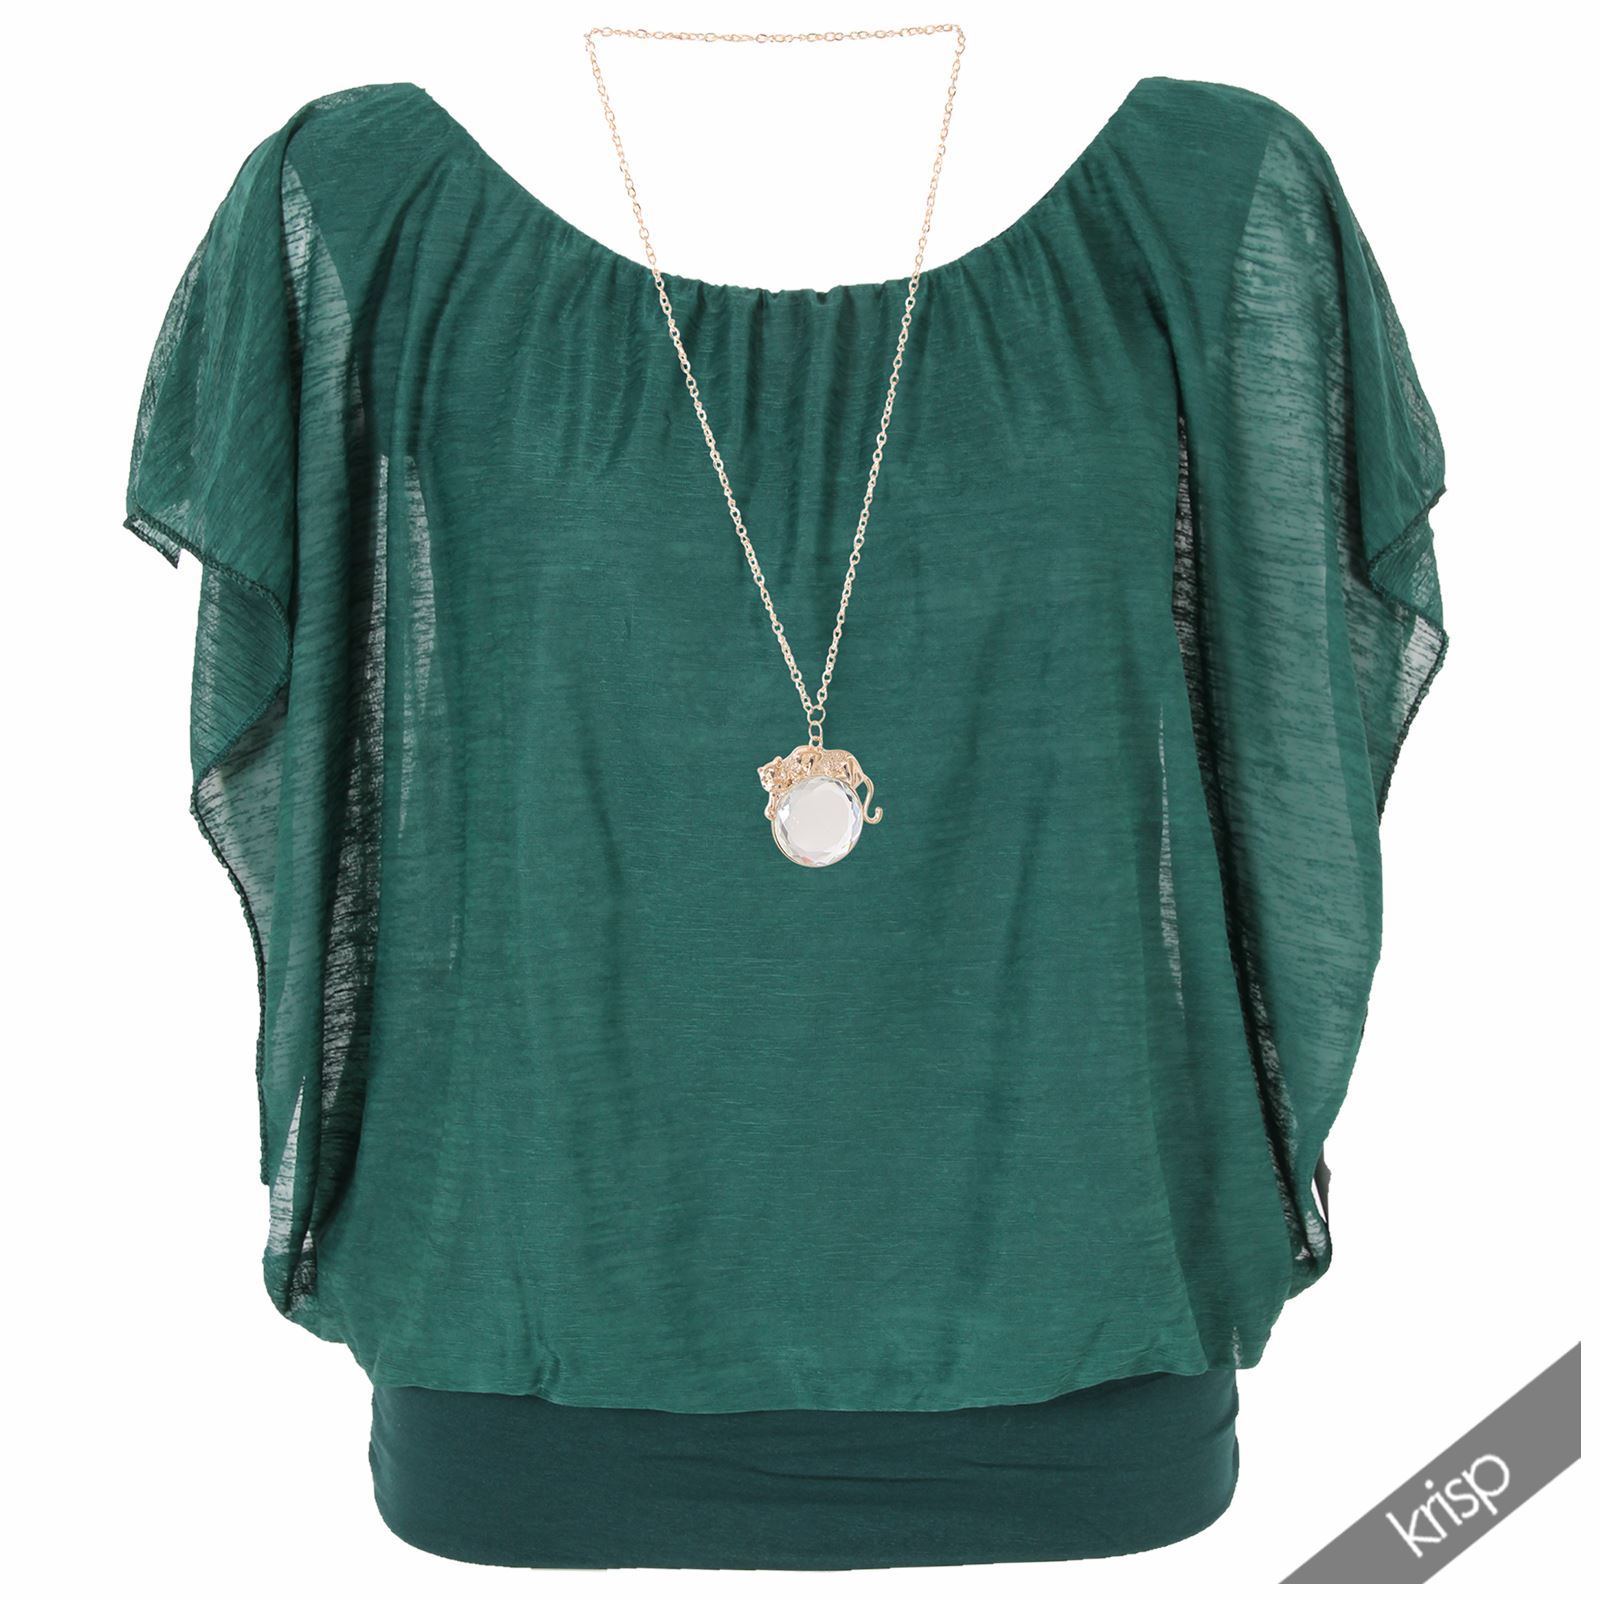 res top wb necklace knit hi kismet with lined olive